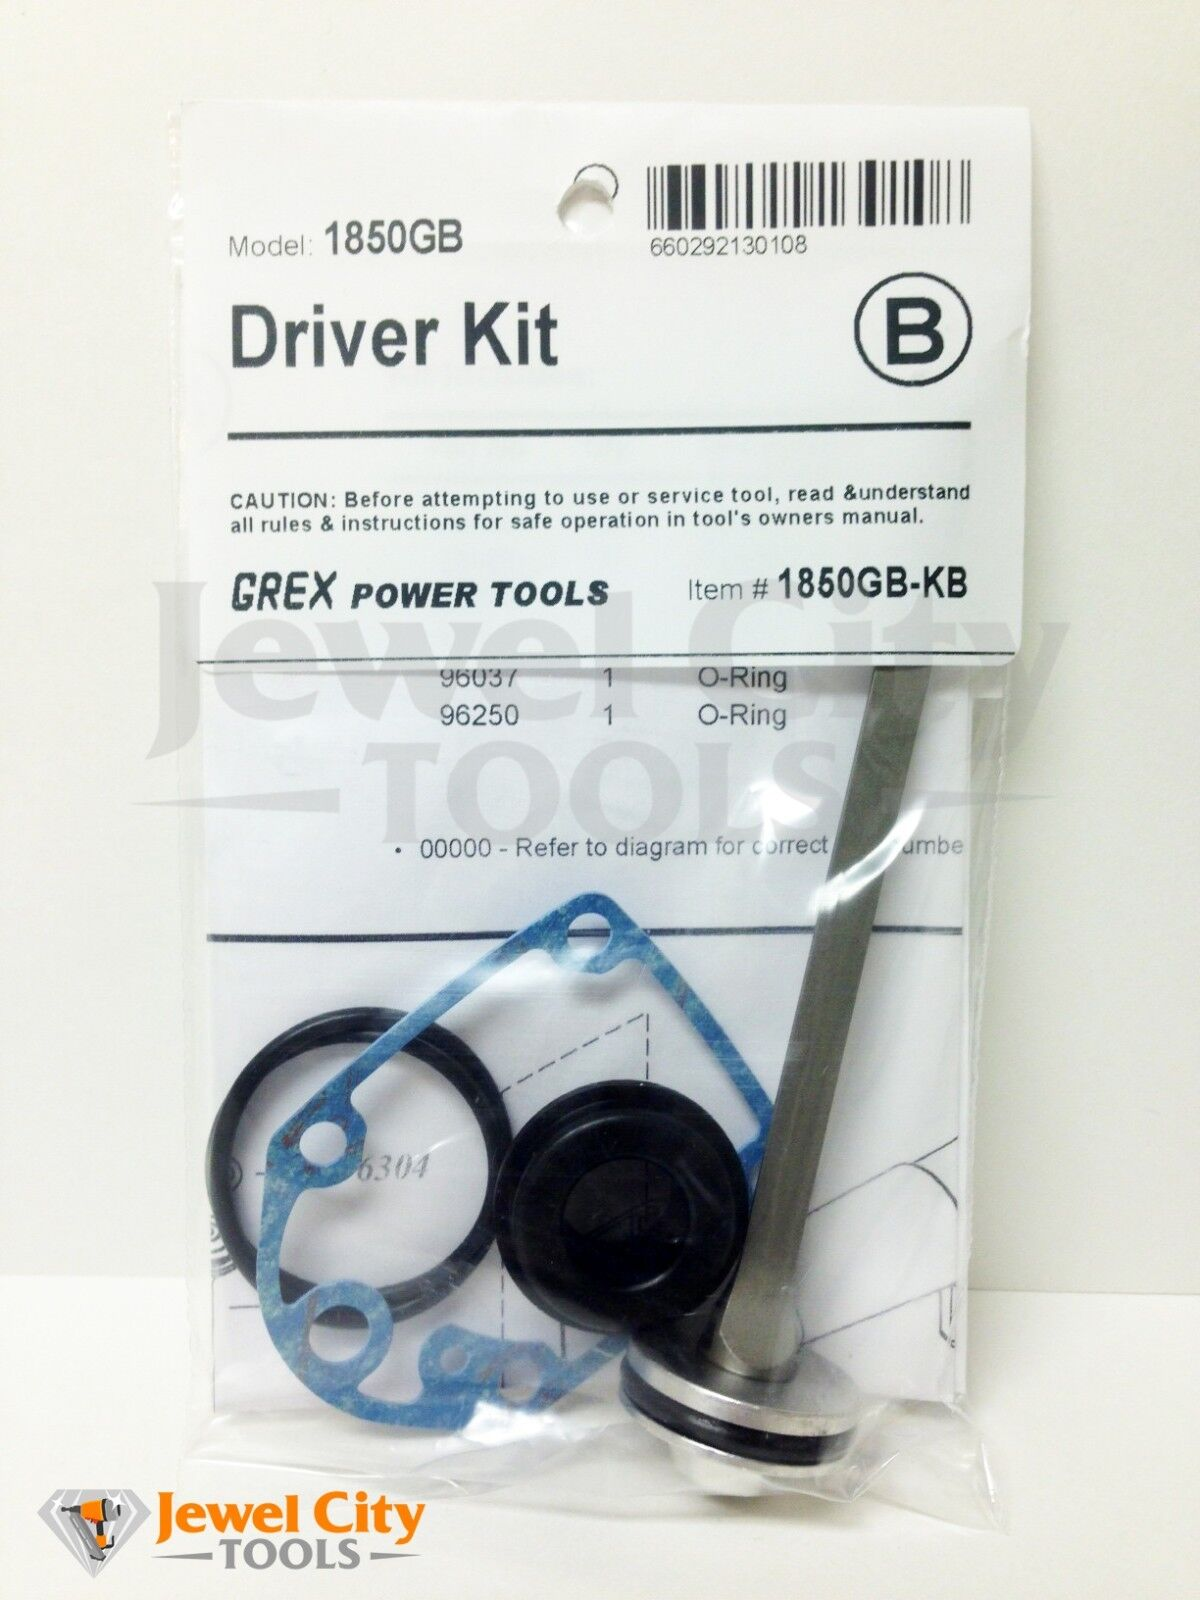 Grex Replacement O-Ring Kit for 1850GB Part #  1850GB-KD 660292130153 1850GBKB